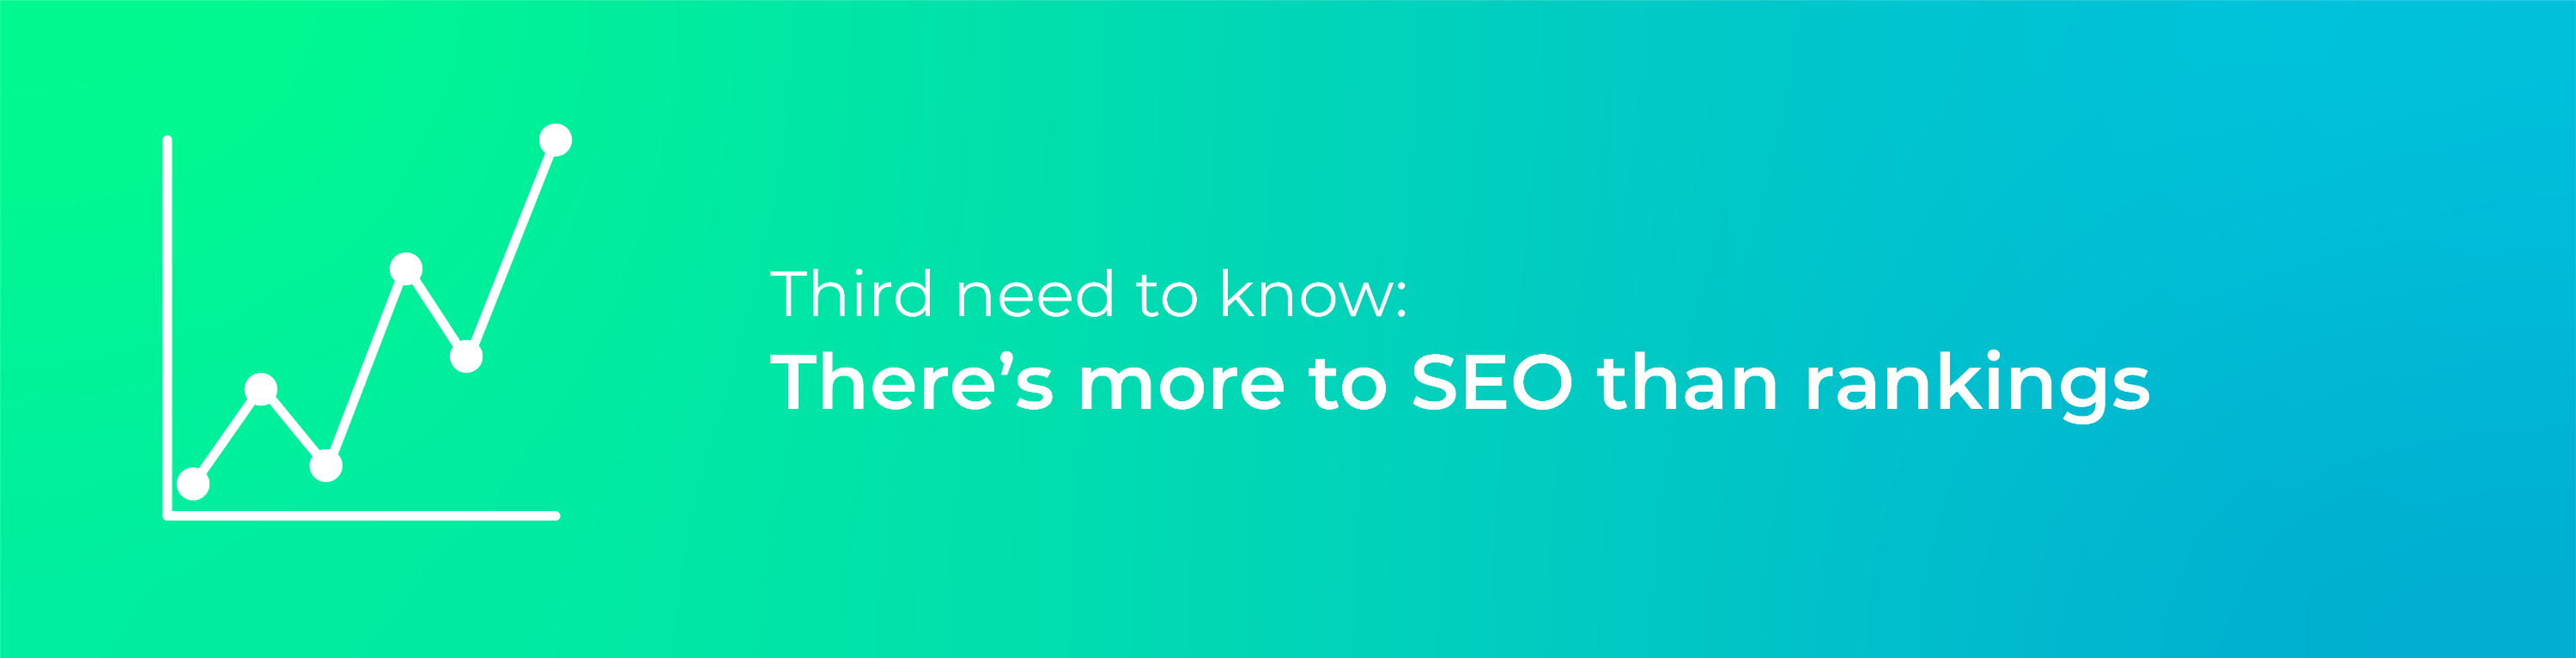 Third need to know - SEO